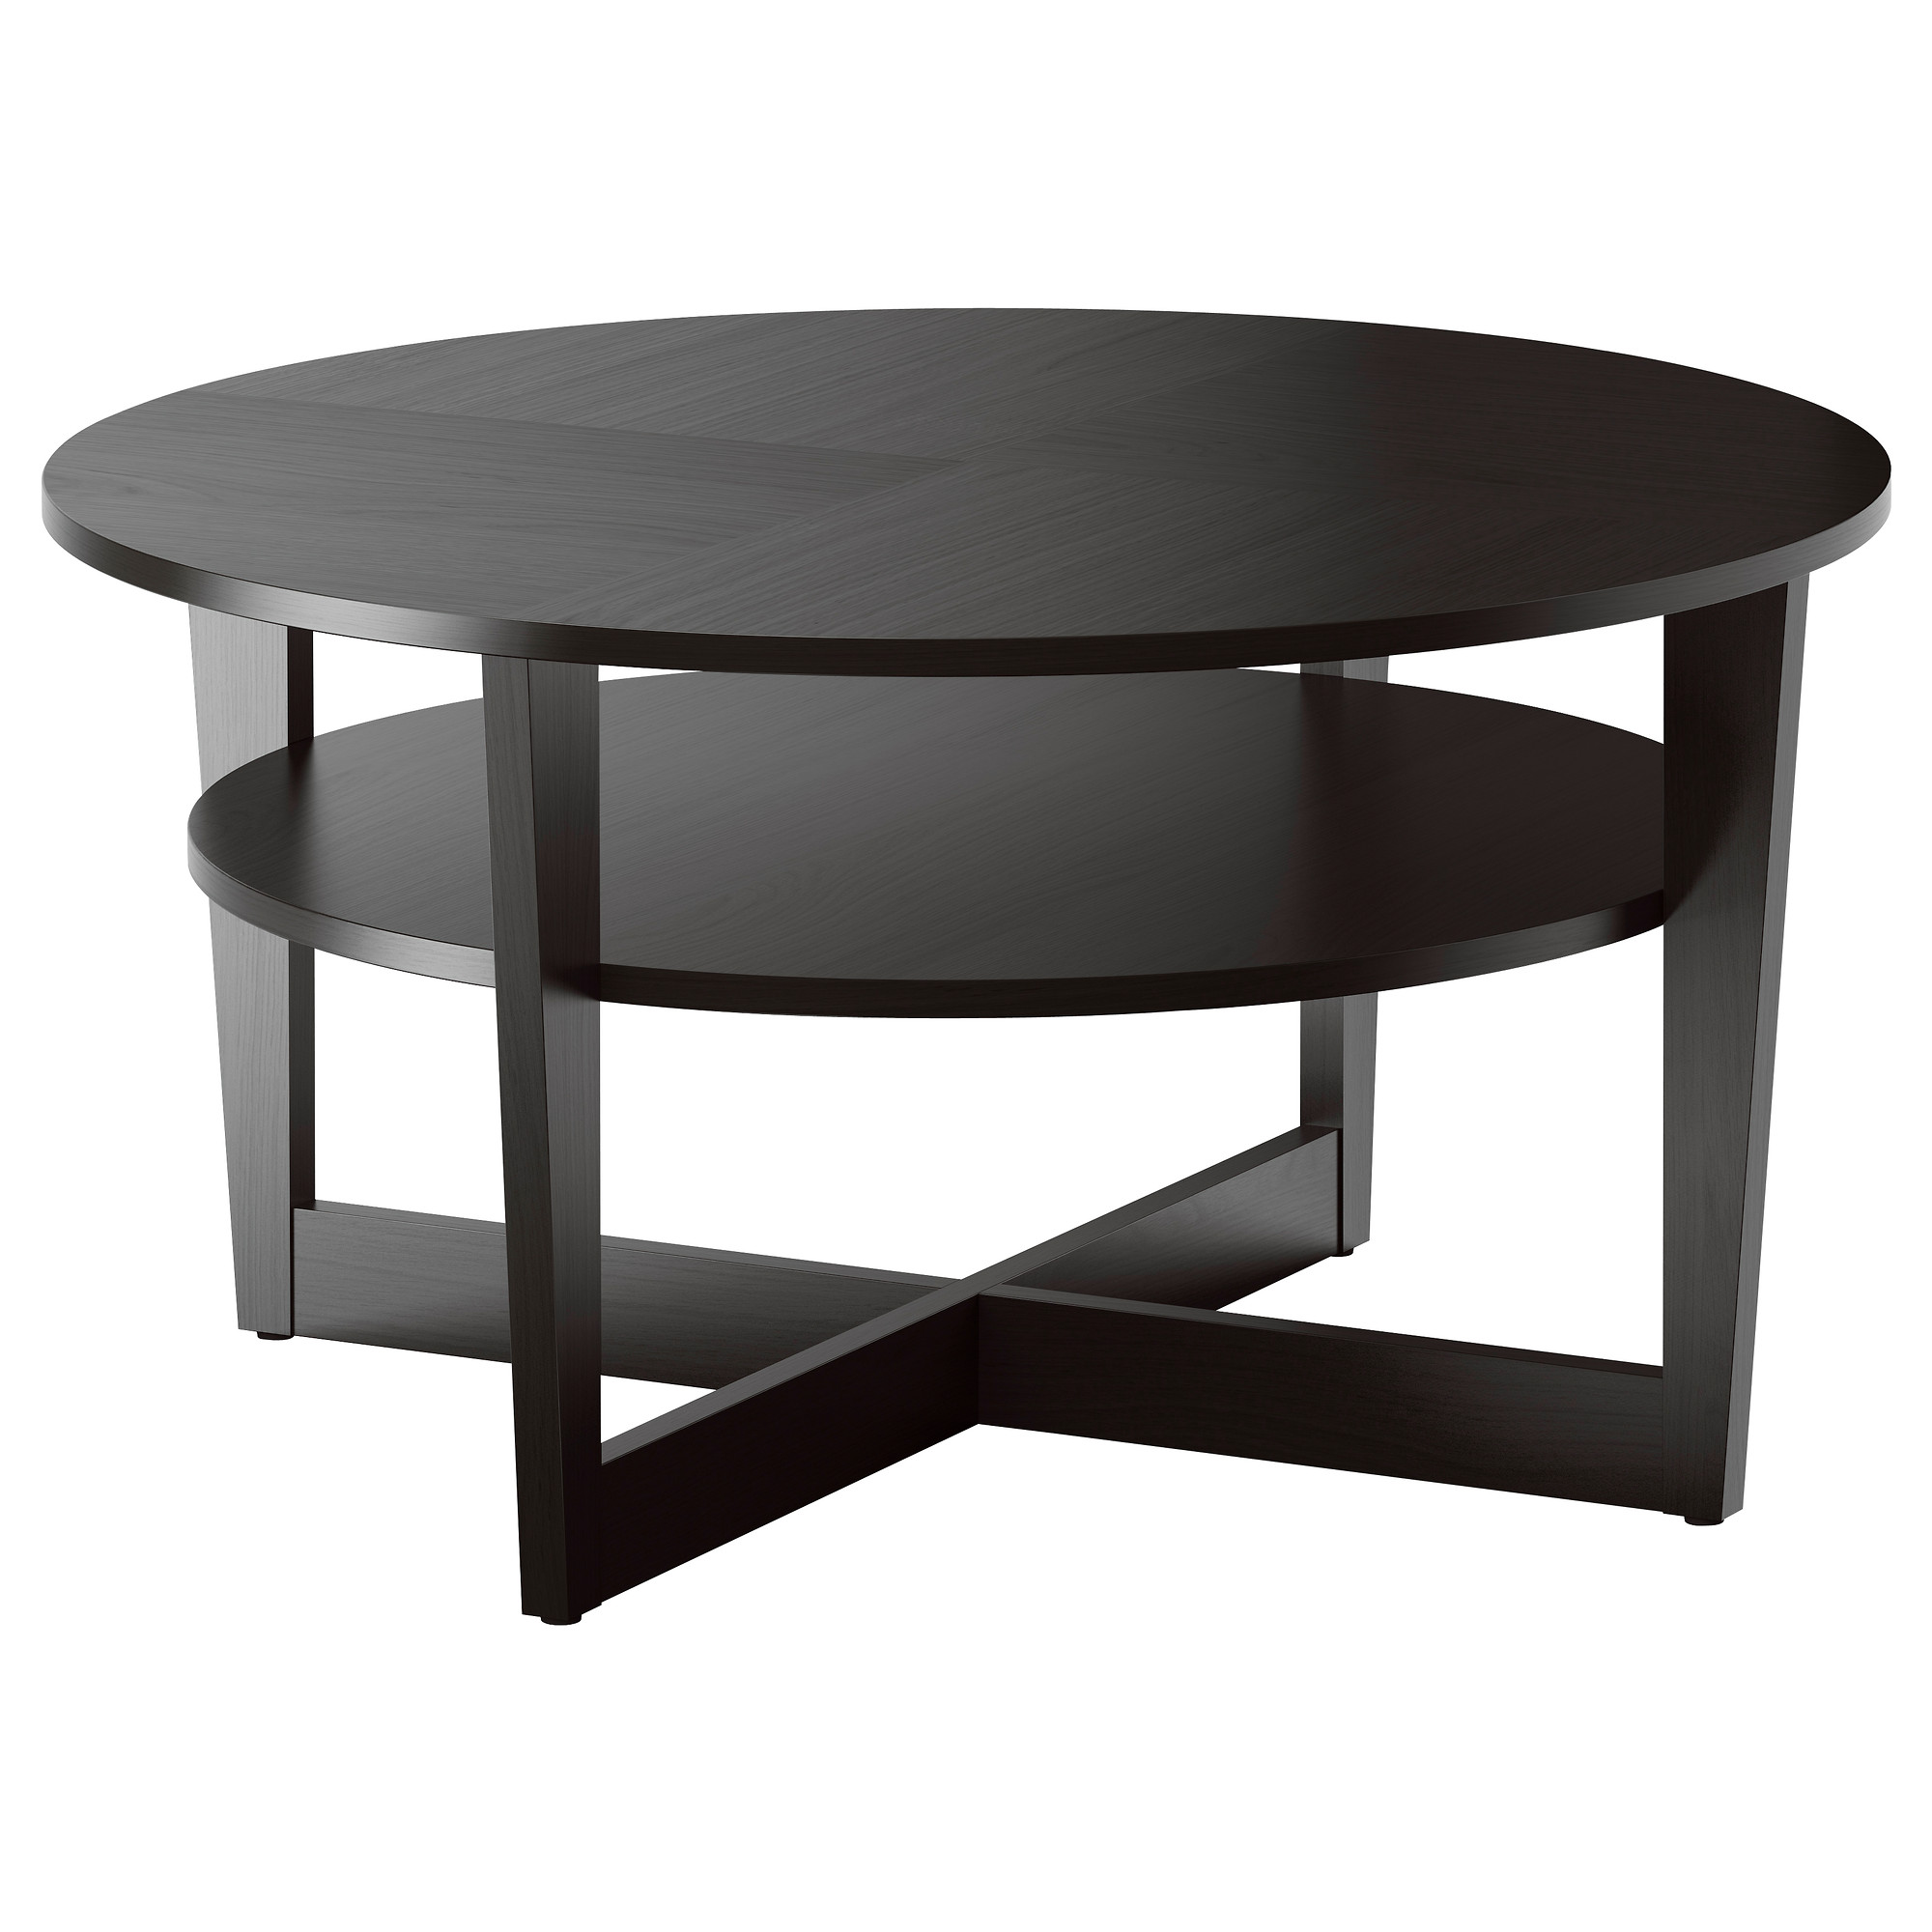 Ikea Black Coffee Table With Glass Top Unique And Functional Shower Bench Designs Is Both Practical And Stylish (View 8 of 10)